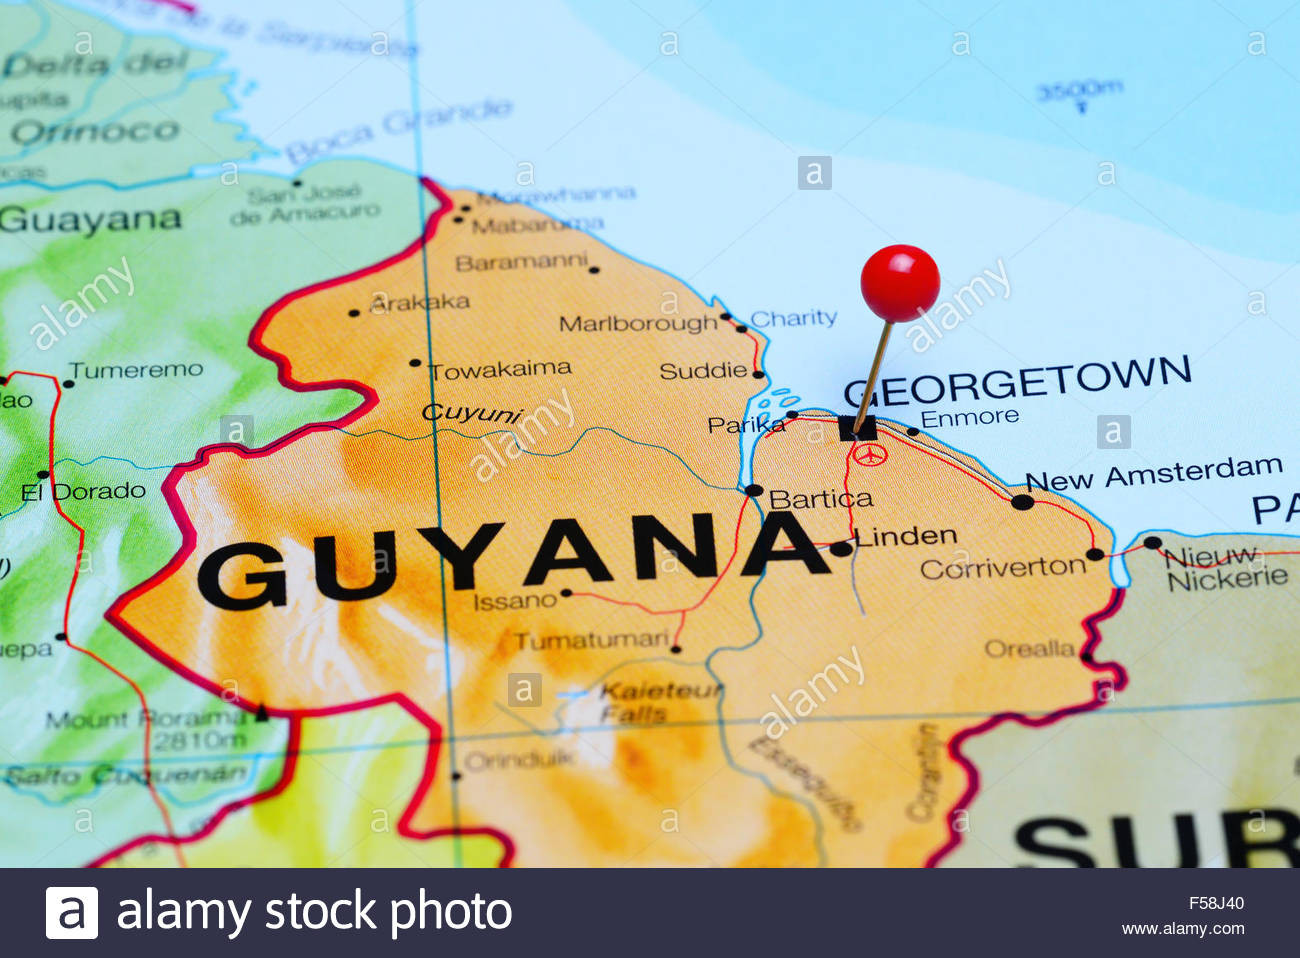 Printable Map Georgetown Penang Awesome Geor Own Guyana Stock S & Geor Own Guyana Stock Alamy